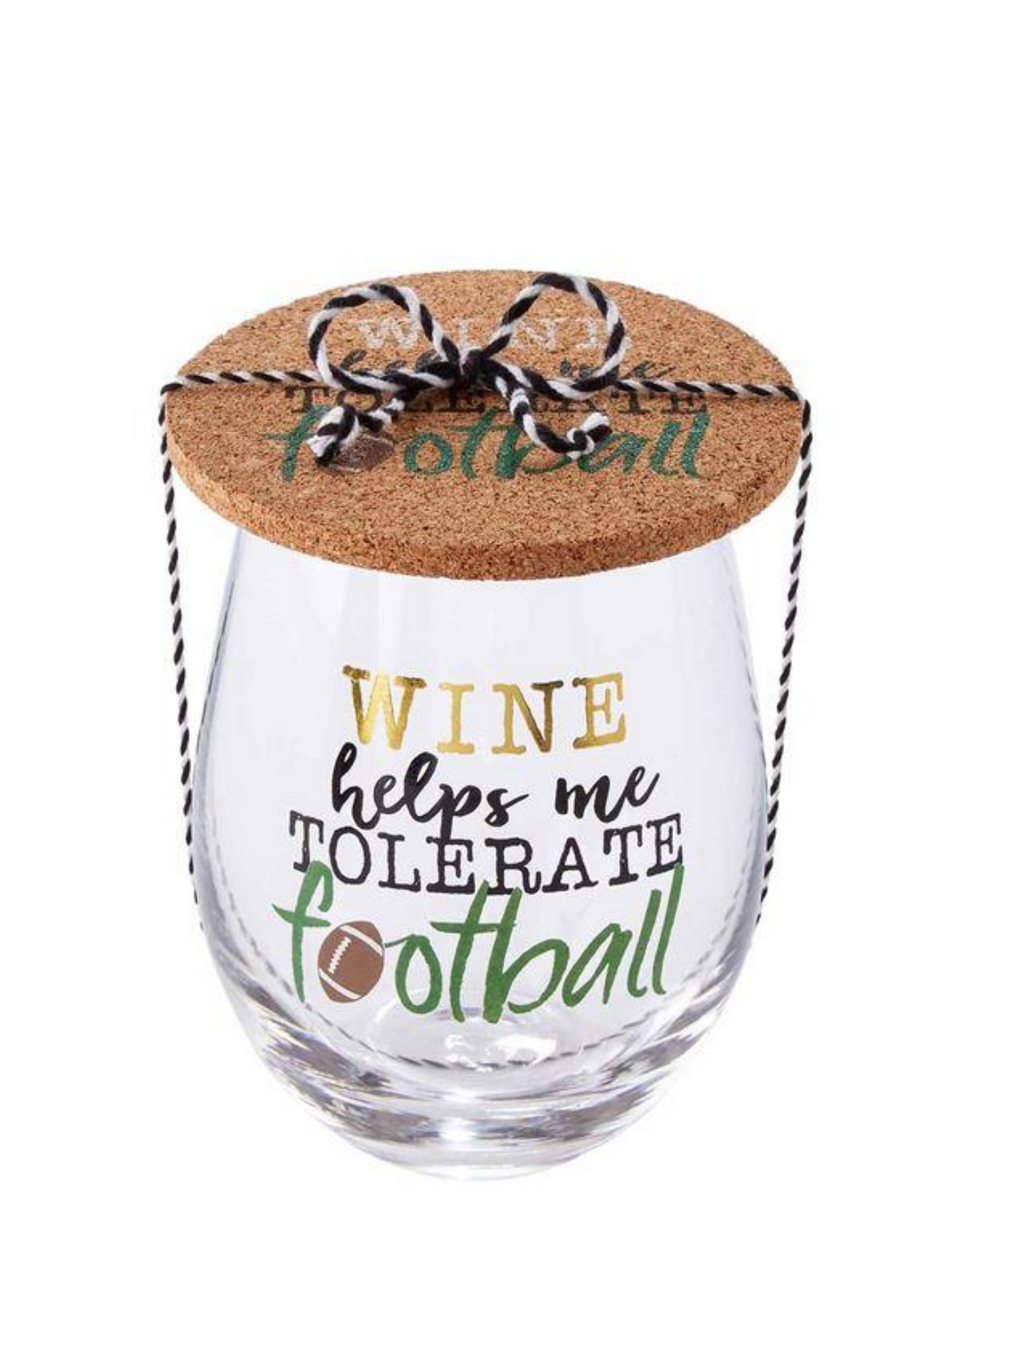 Tolerate Football Glass